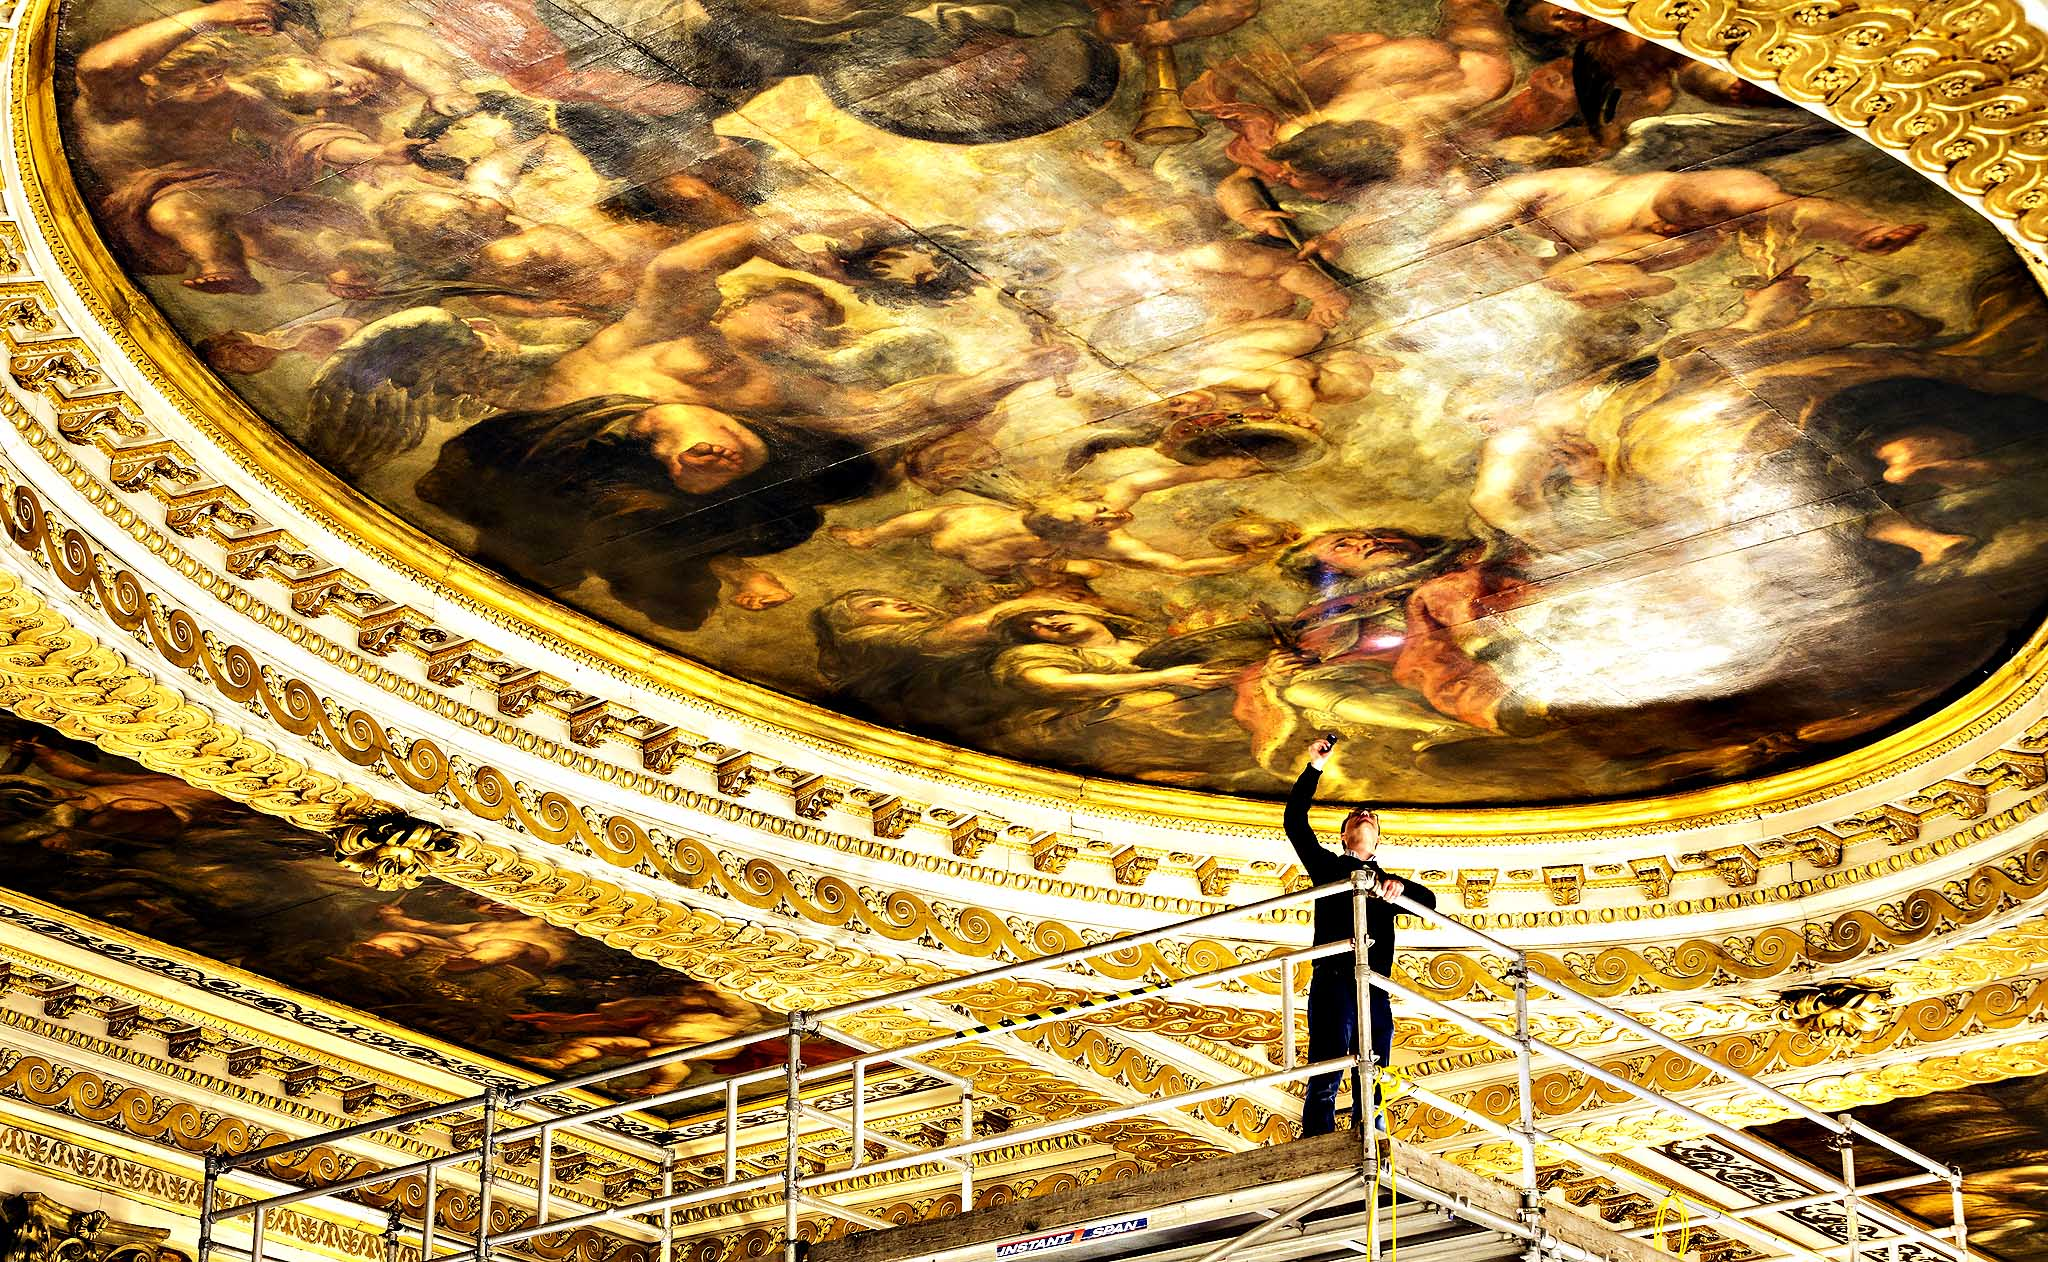 Preventive conservation co-ordinator at Historic Royal Palaces Jonathan Bridal inspects the Rubens ceiling paintings for damage during a conditioning survey at Banqueting House on January 21, 2014 in London, England. Flemish artist Sir Peter Paul Rubens painted the nine oil canvases for Charles I, they were installed in the hall in 1636. The three main canvasses depict The Union of the Crowns, The Apotheosis of James I and The Peaceful Reign of James I, since their creation, the paintings have undergone at least 14 restoration treatments including mounting the canvases permanently onto plywood boards in 1907. For the first time Historic Royal Palaces has taken paint samples of the coffering to determine past colour schemes.